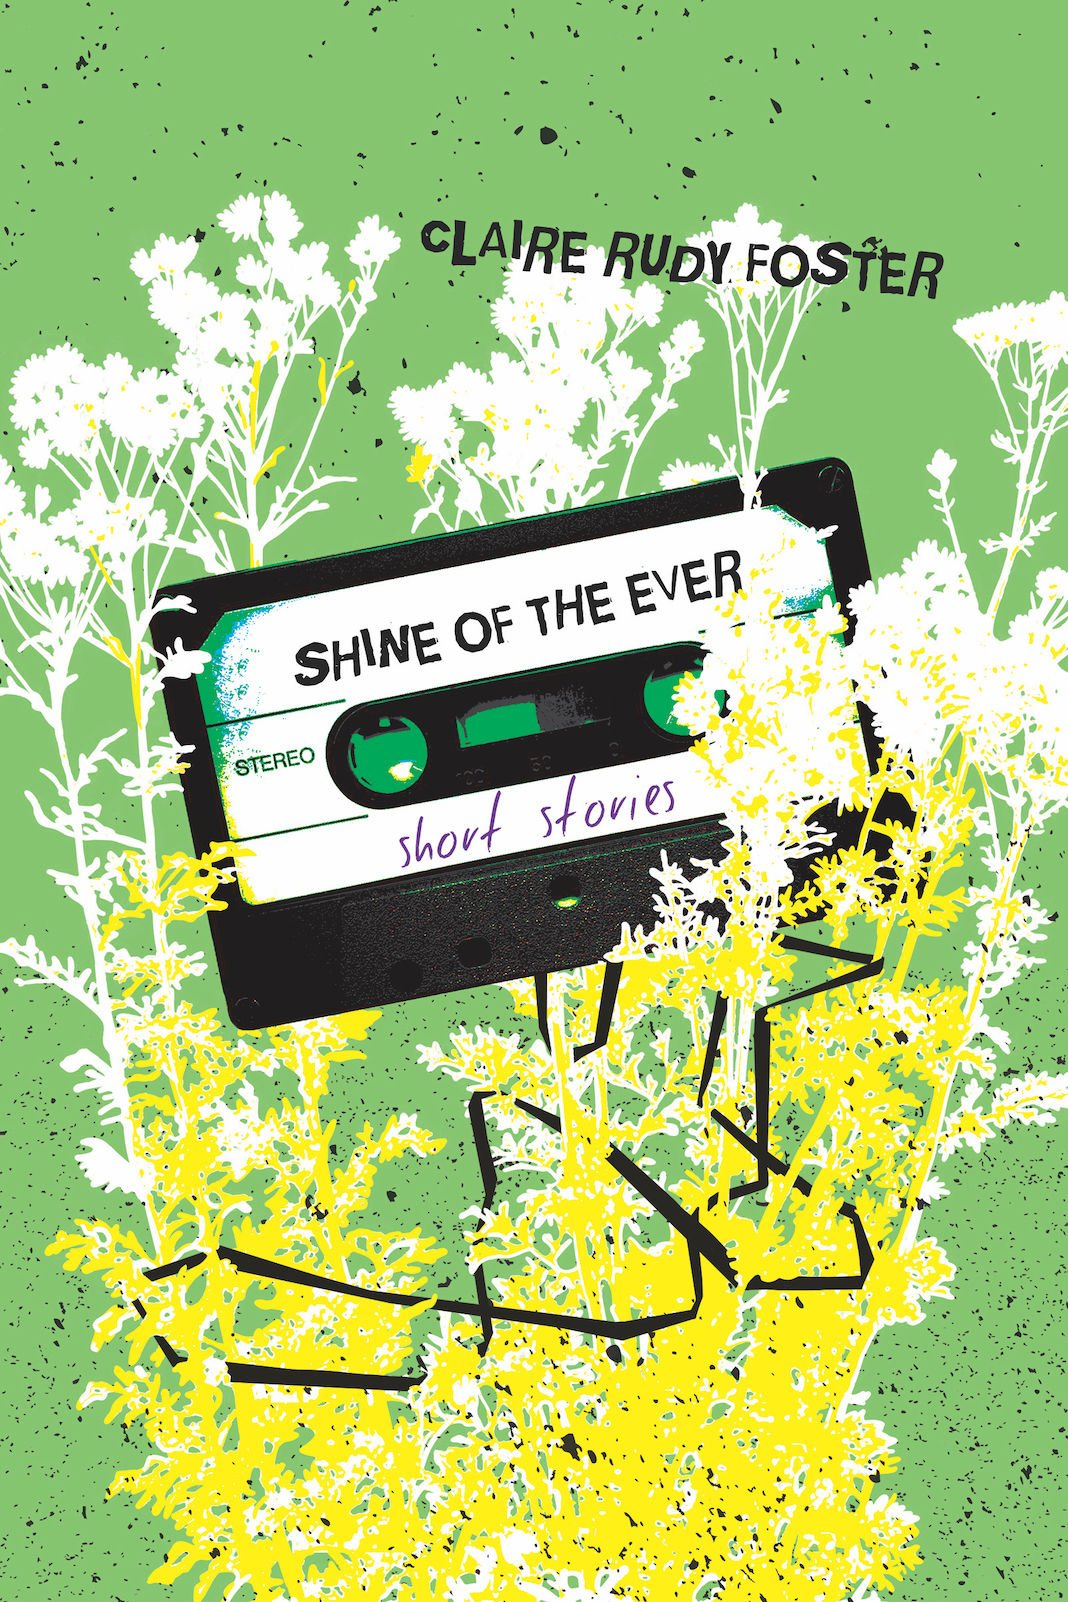 Claire Rudy Foster writes of '90s Portland in 'Shine of the Ever'